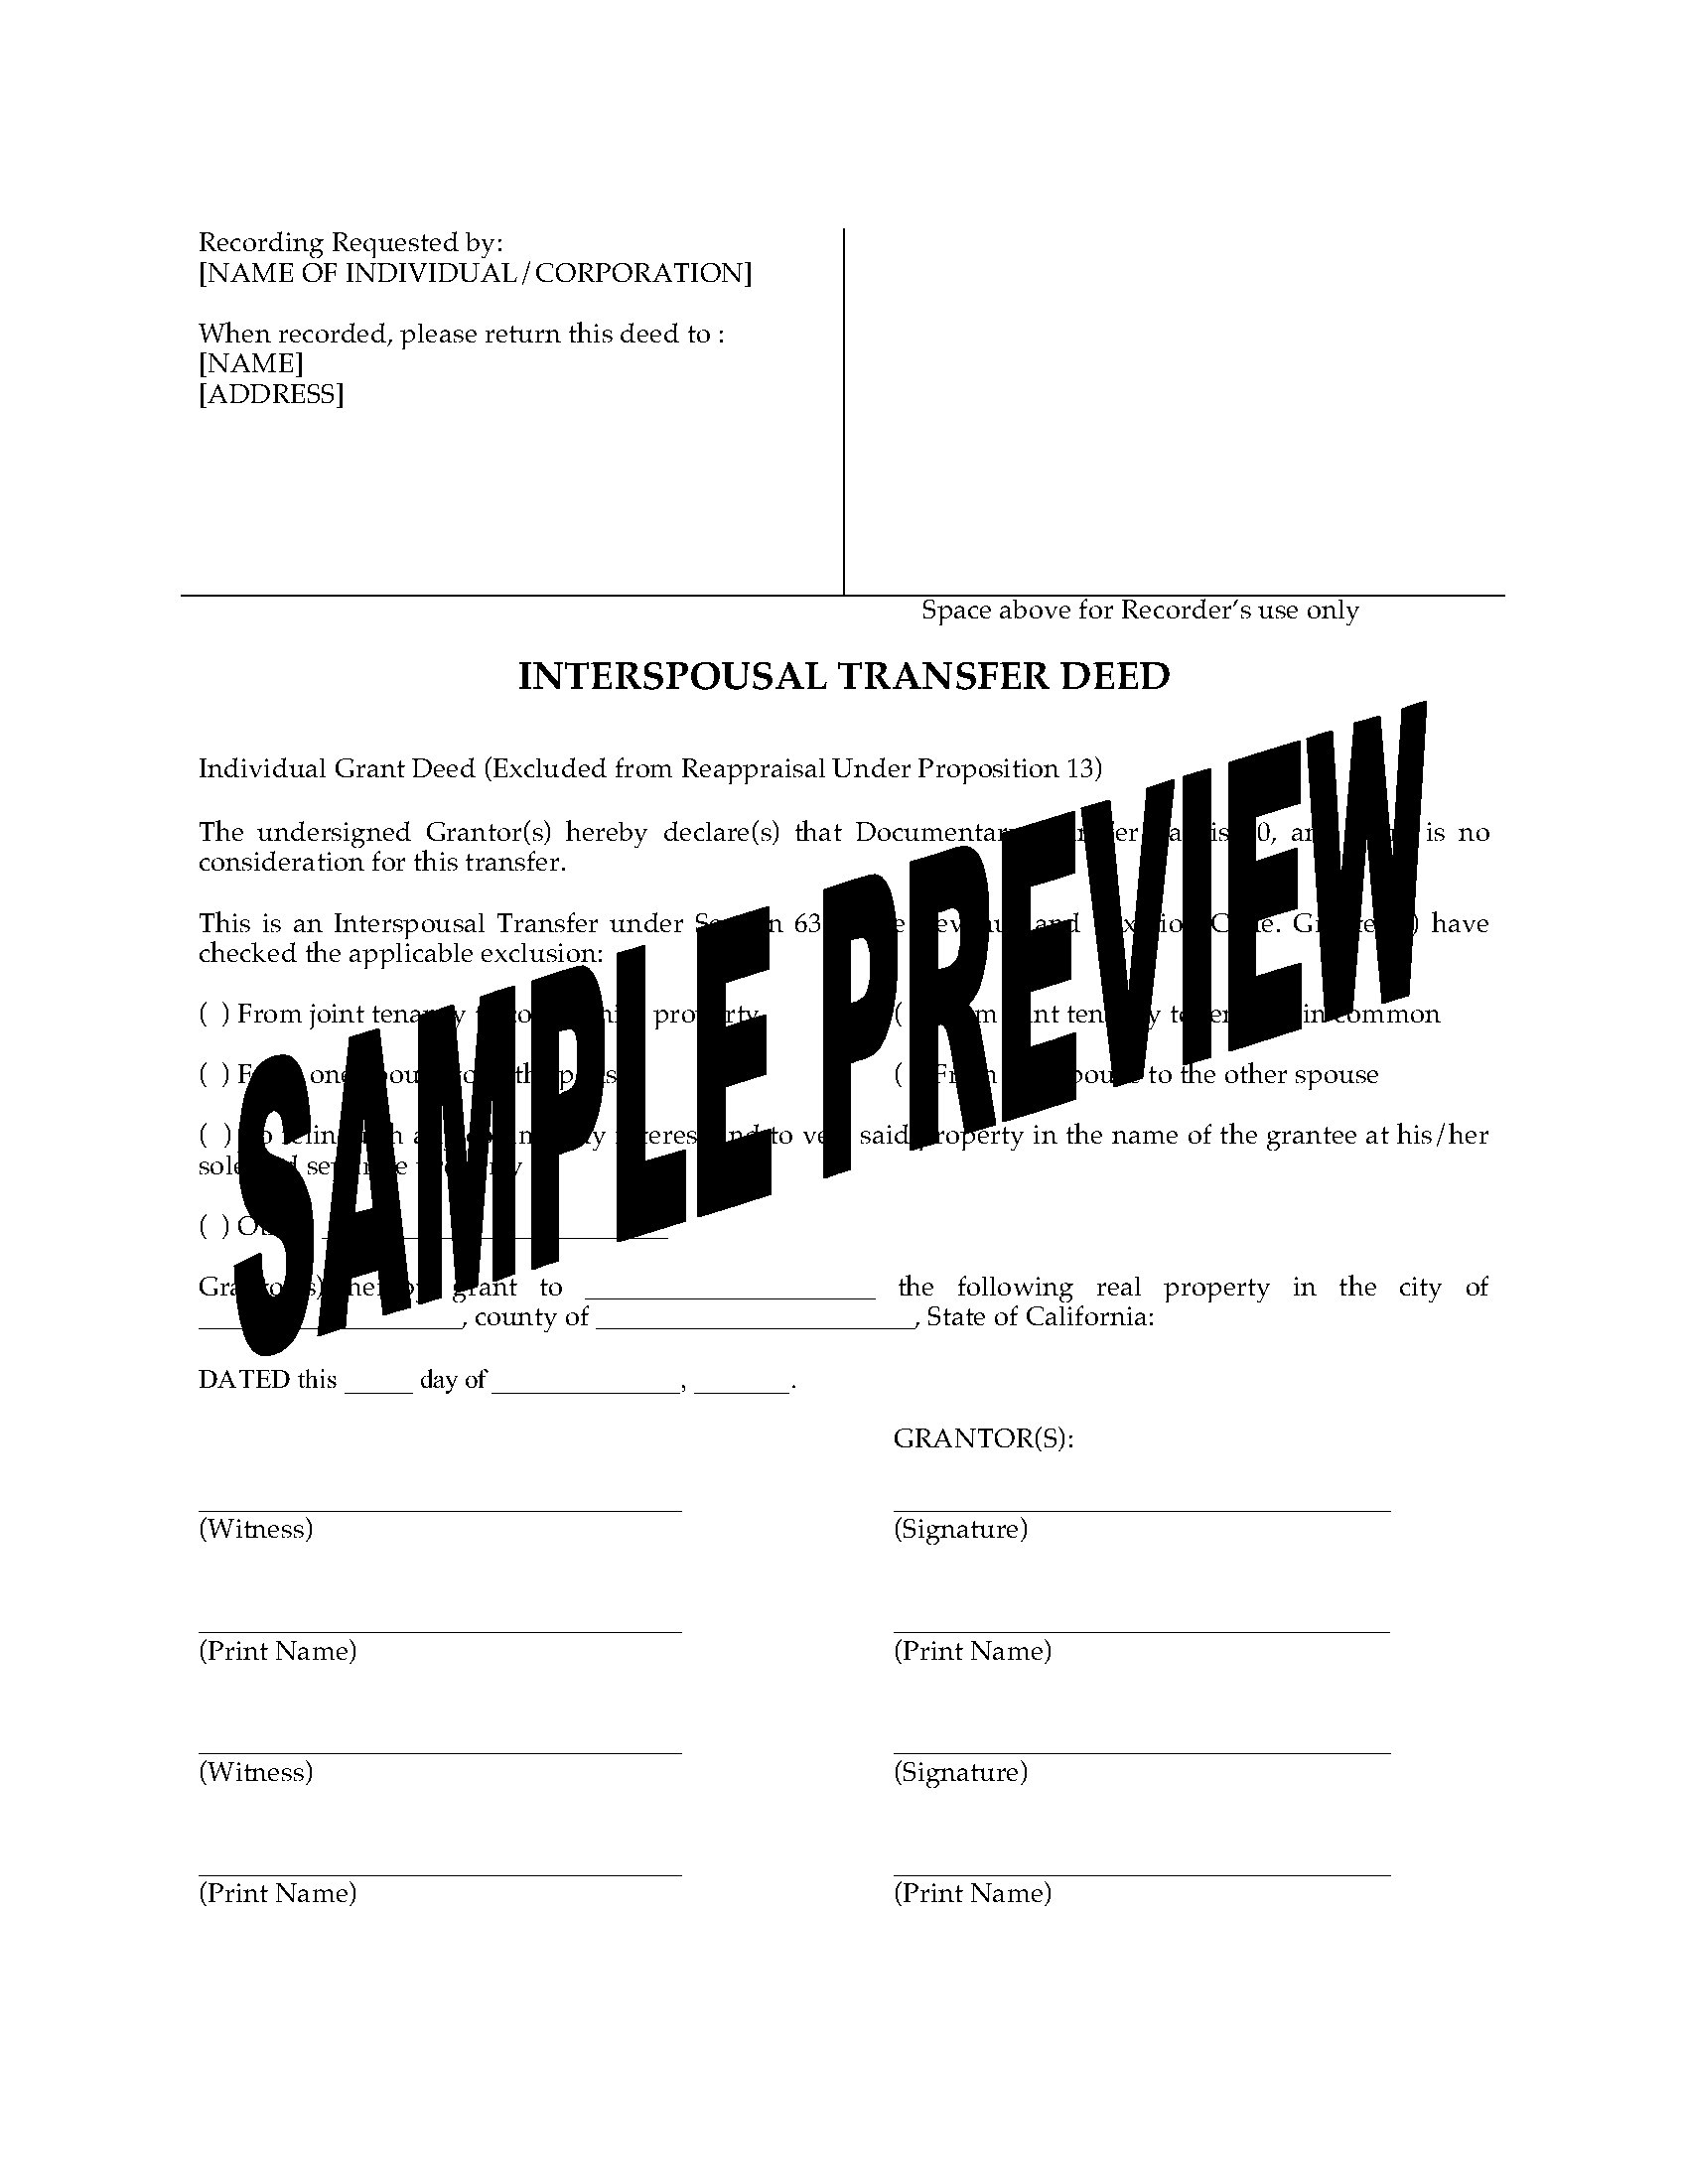 deed of conveyance template - california interspousal transfer deed legal forms and